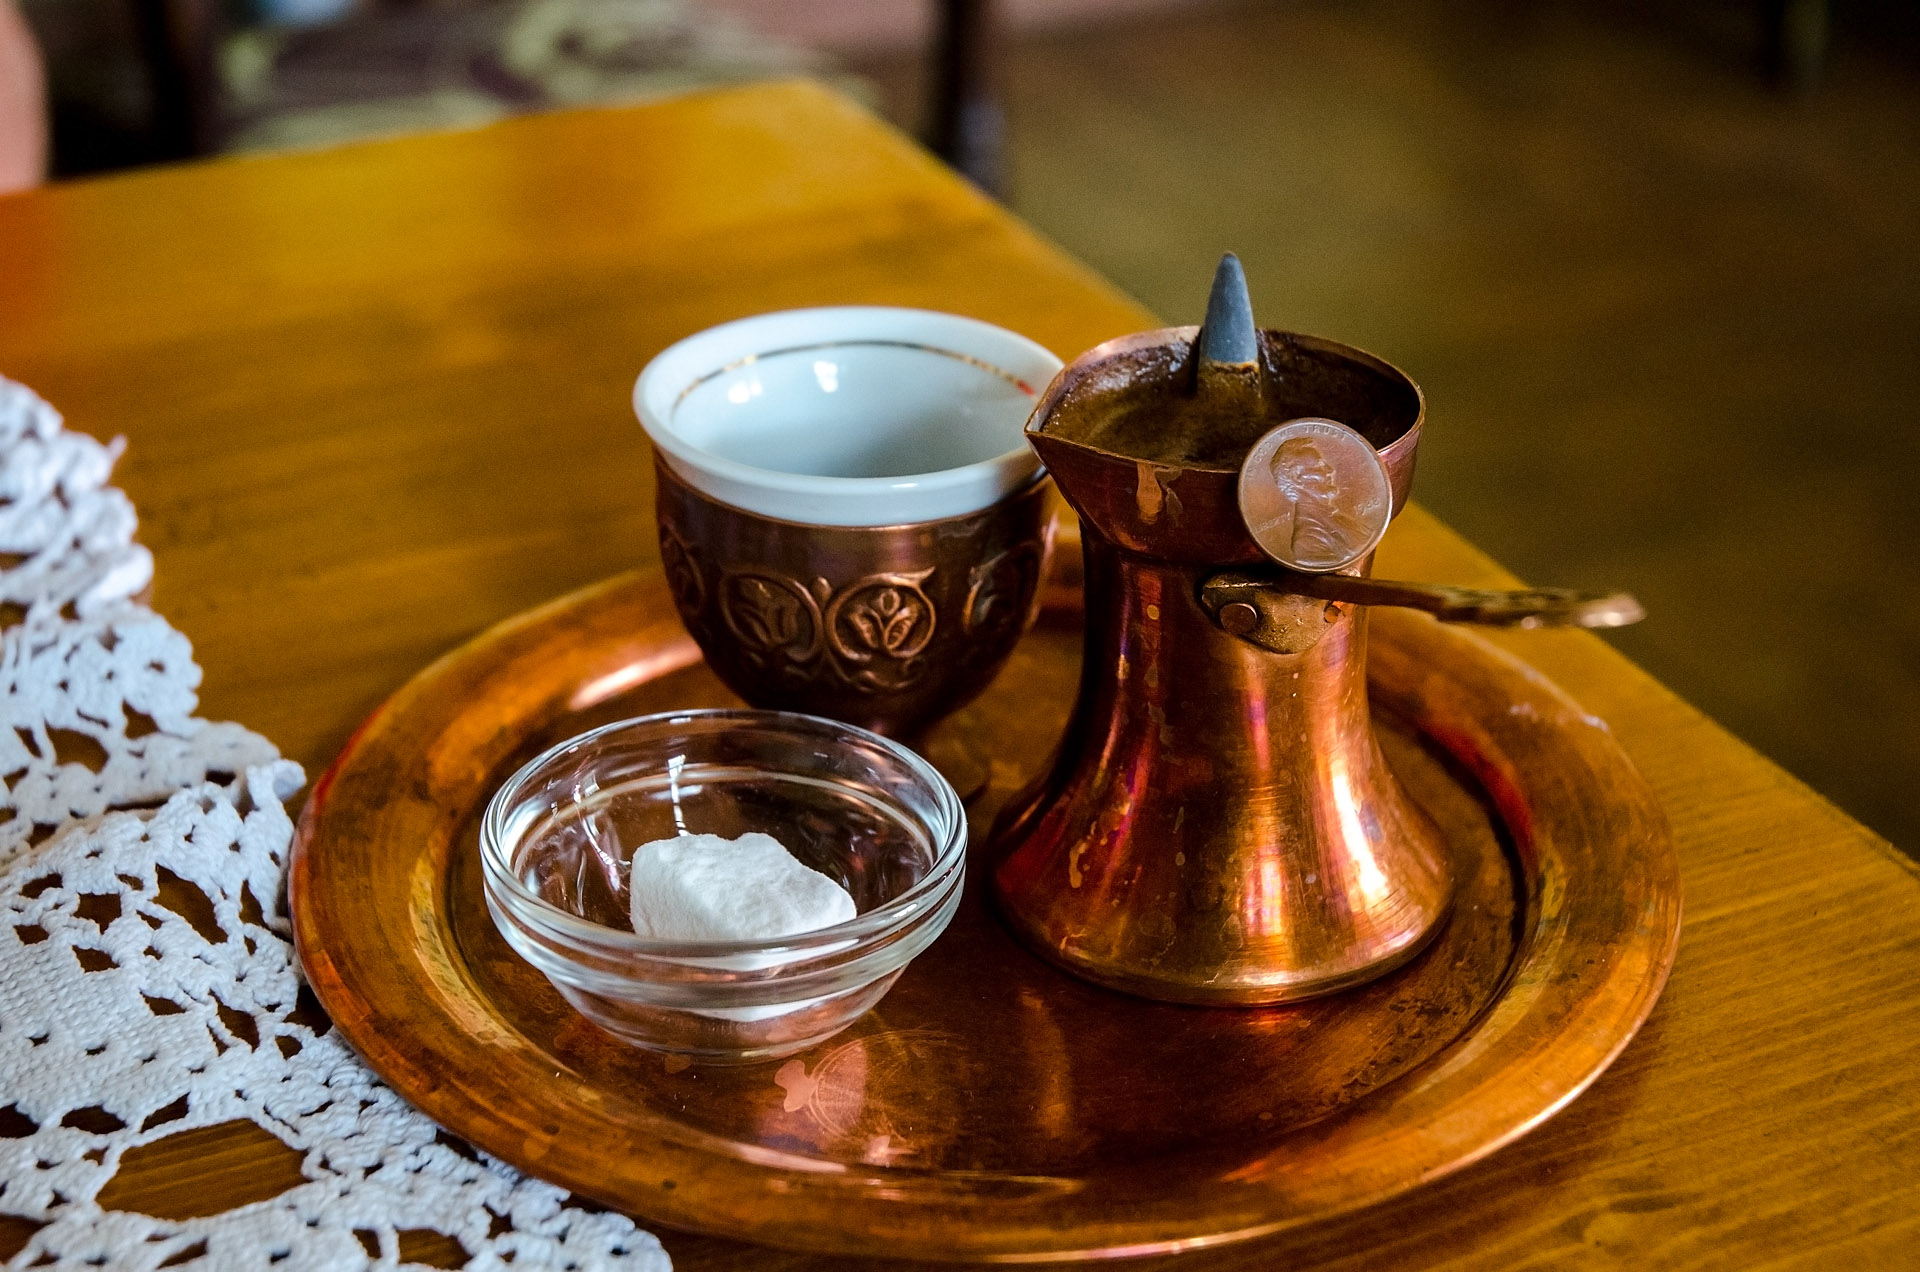 Enjoying some Bosnian coffee